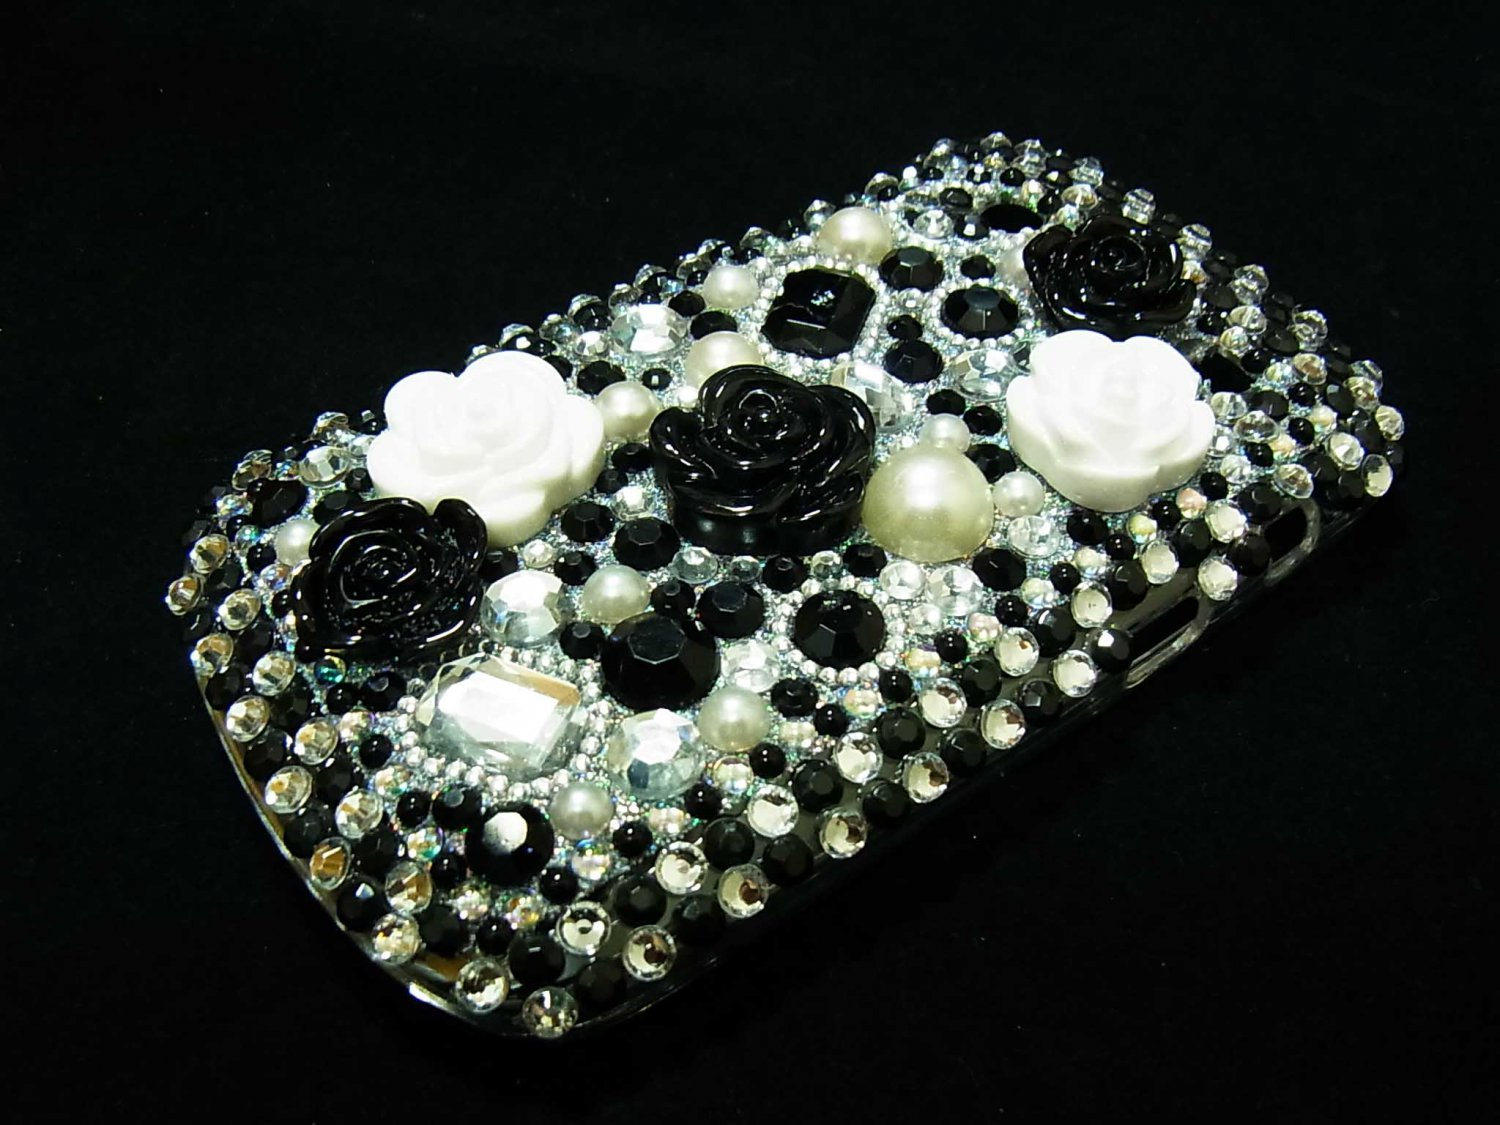 Bling Rhinestone Crystal Black White Flower Case Cover for Blackberry 9900 9930 Bold FB